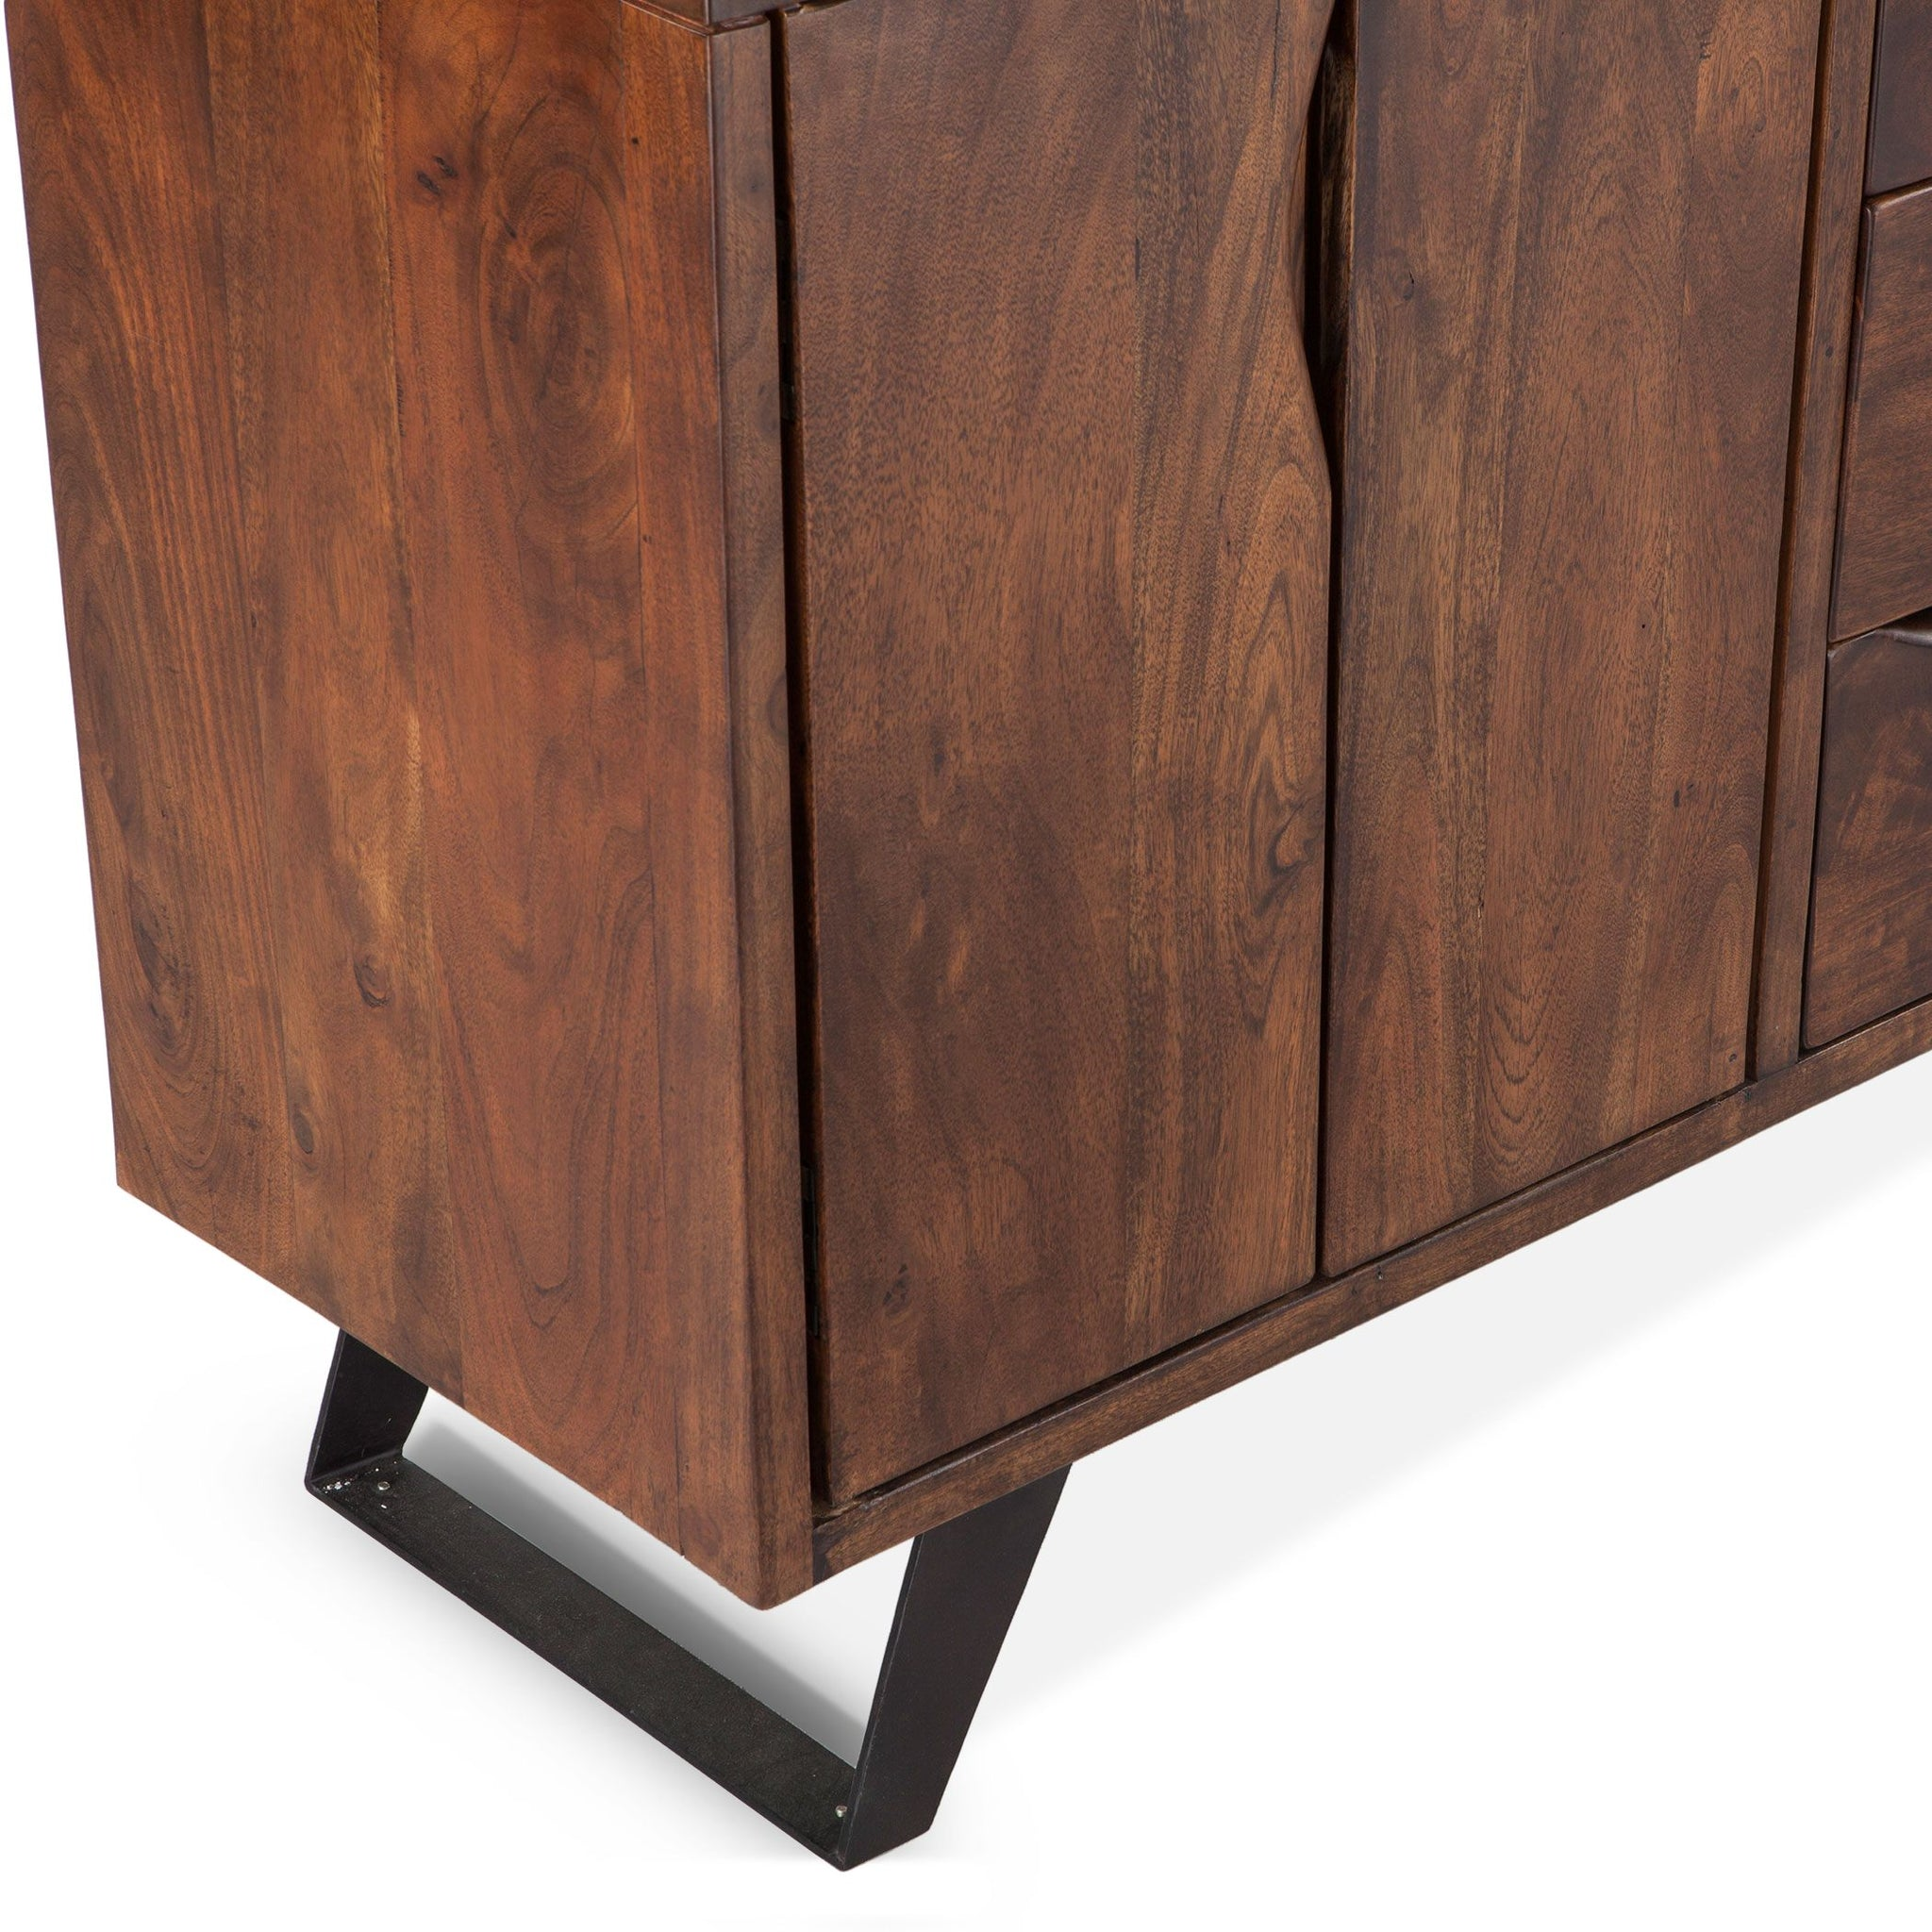 Reclaimed Iron and Wood Sideboard - Furniture on Main